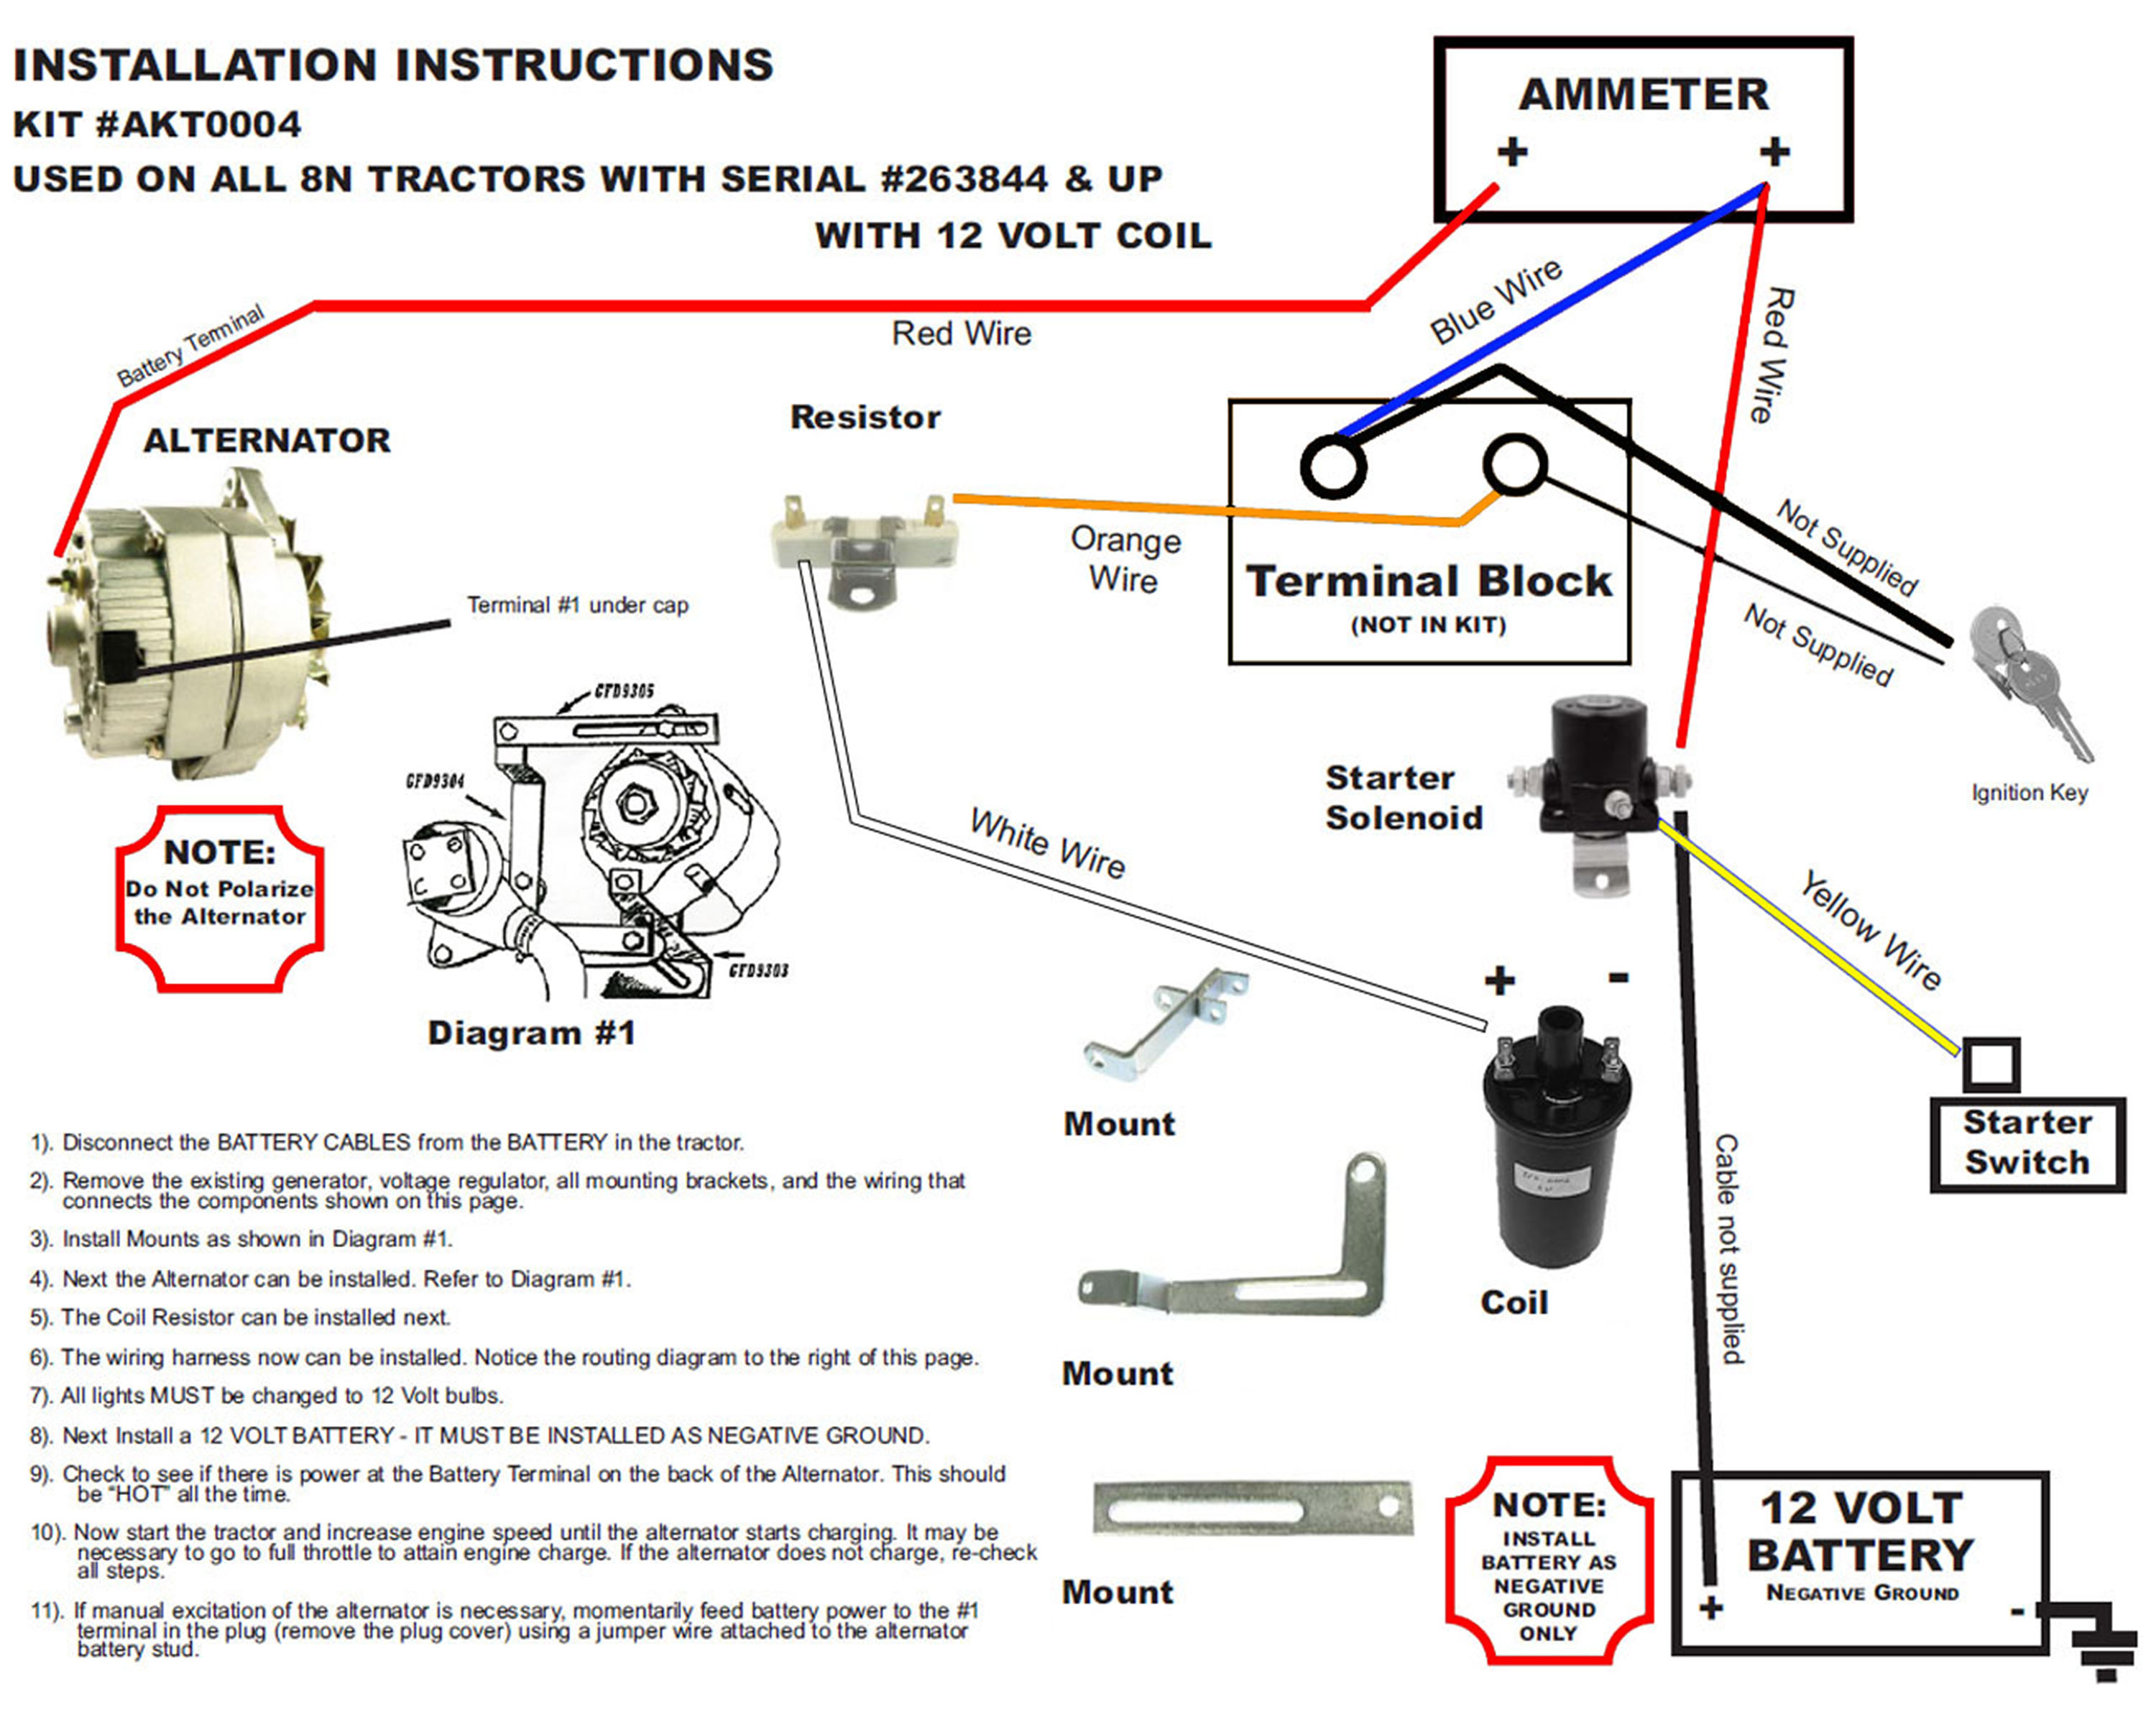 wiring diagrams for ford 9n tractors bpmn models process auditing, Wiring diagram